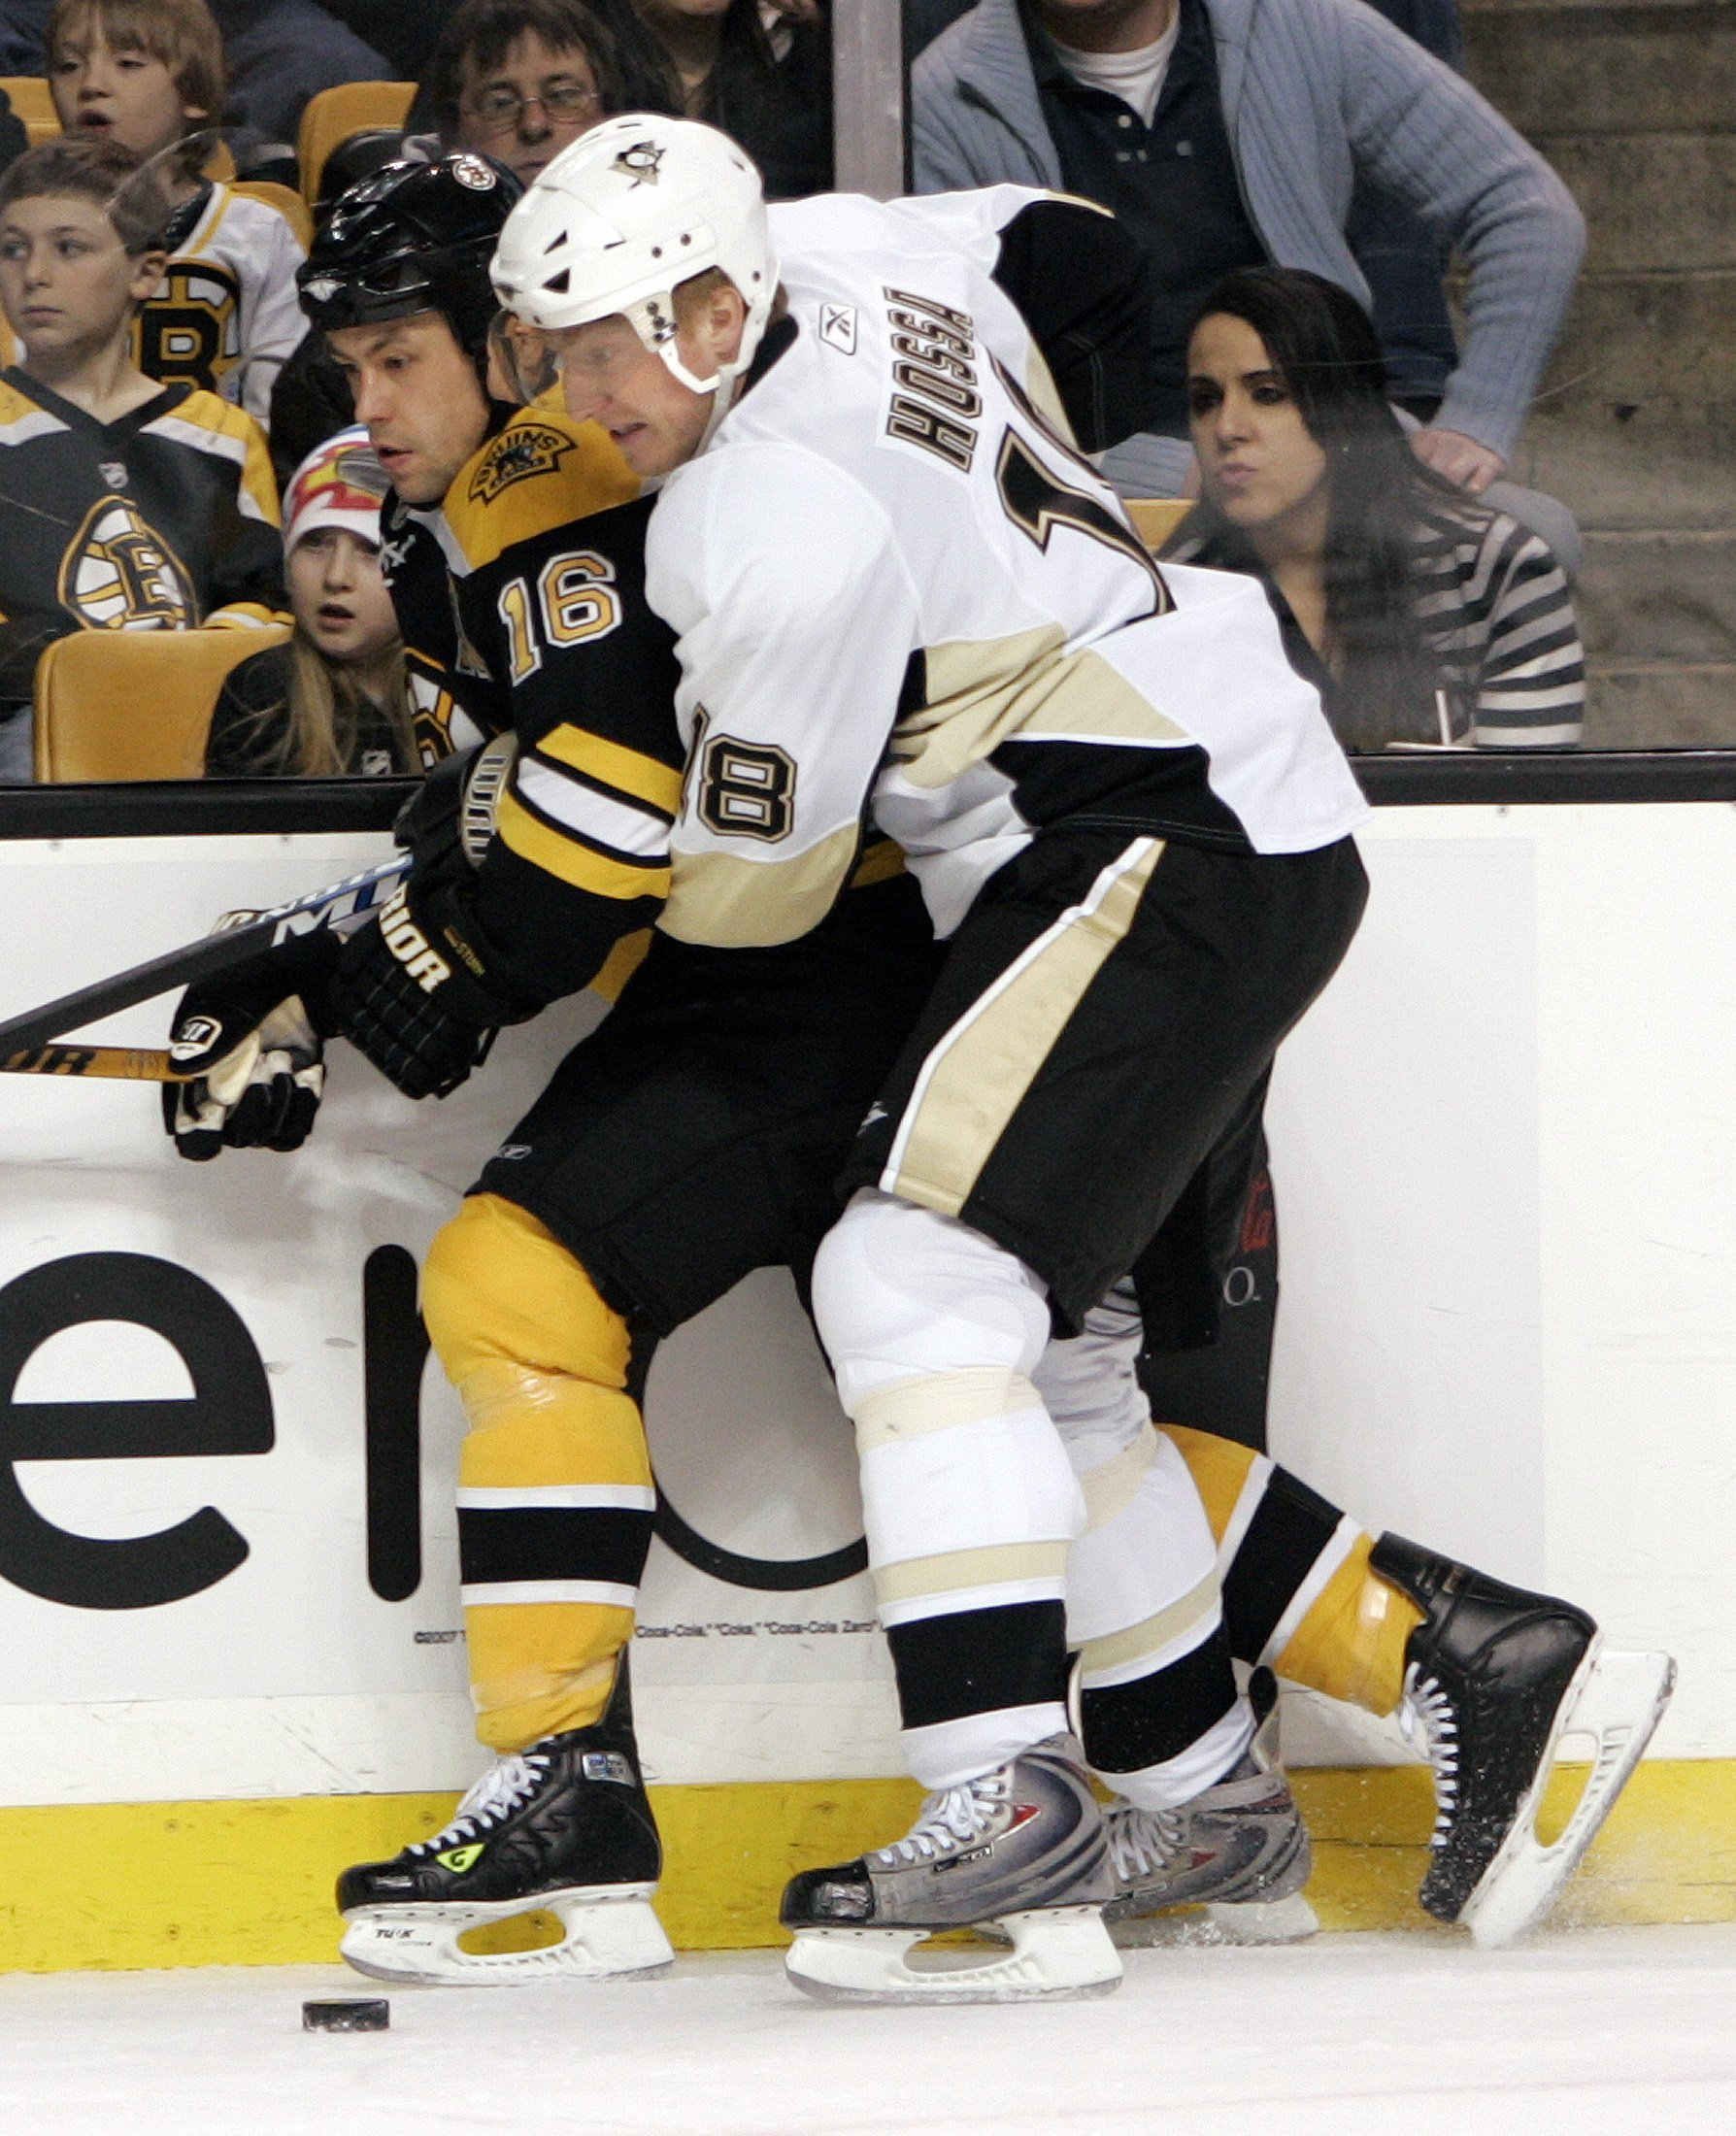 Pittsburgh Penguins' Marian Hossa, right, fights for the puck with Boston Bruins' Marco Sturm during NHL hockey action in Boston, Massachusetts on Thu...